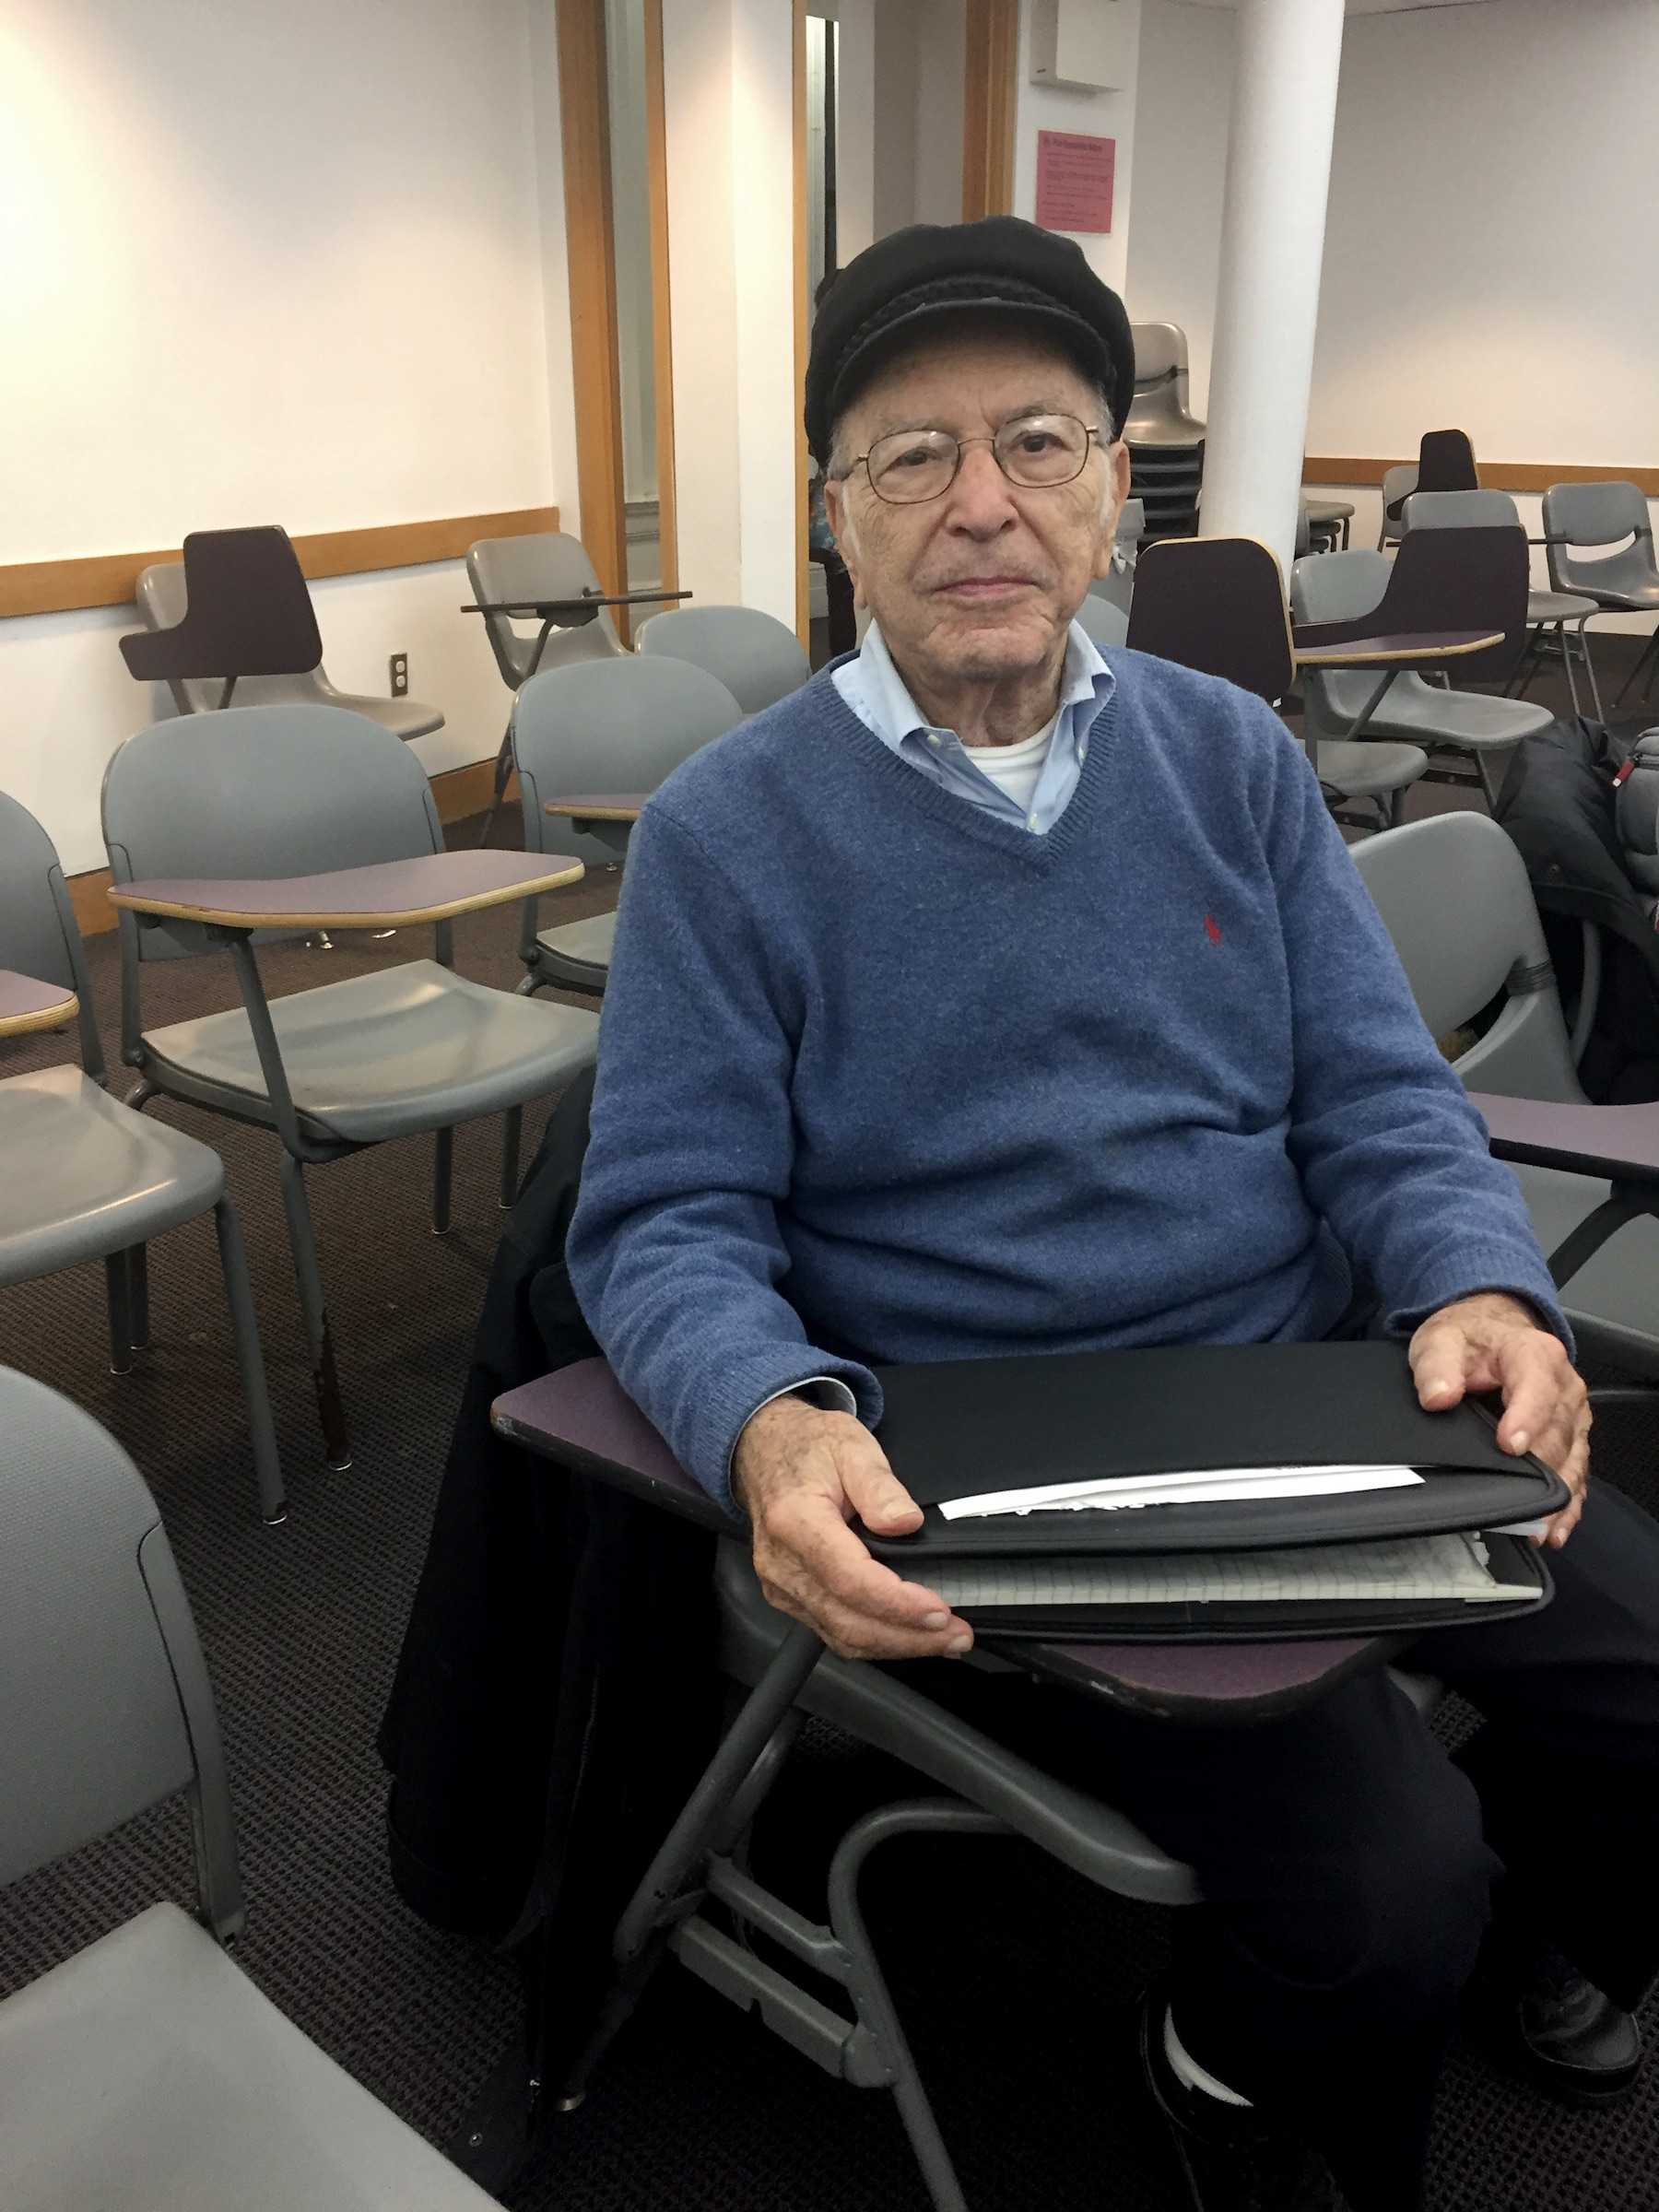 Richard Orin, 89, attends history class at NYU after graduating from NYU Law over 60 years ago.